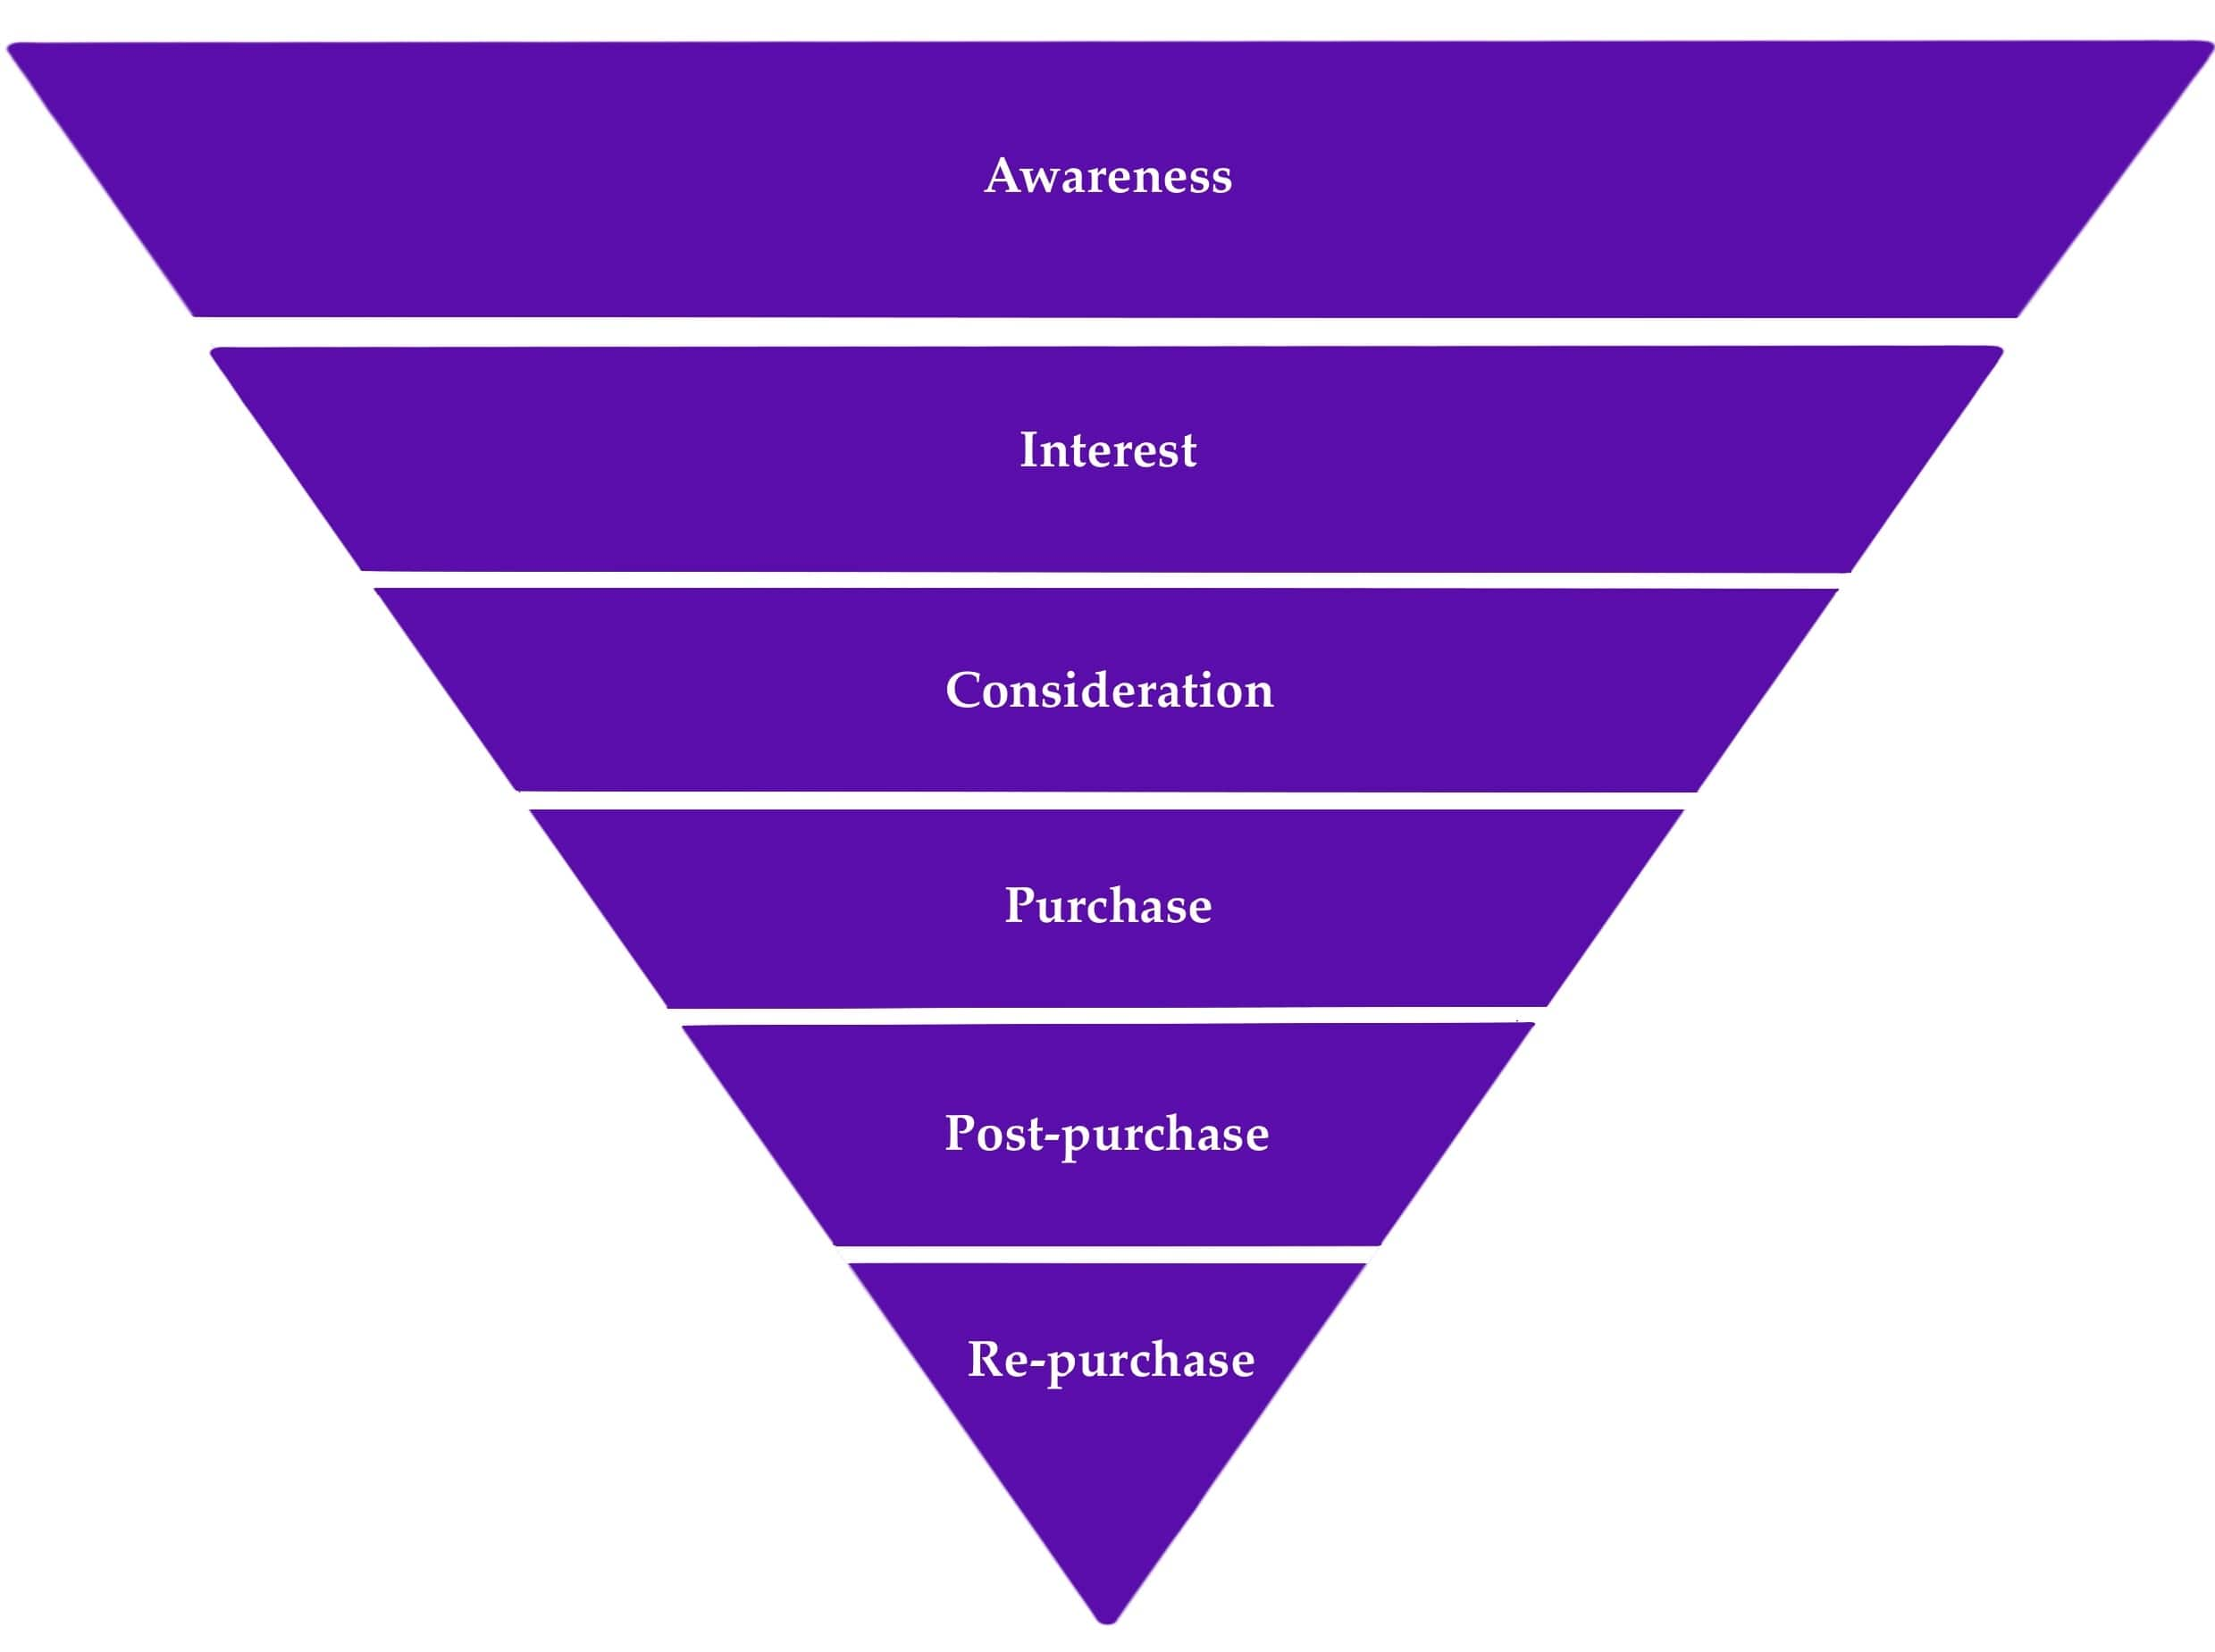 Describes the buyer journey: awareness; interest; consideration; purchase; post-purchase; re-purchase